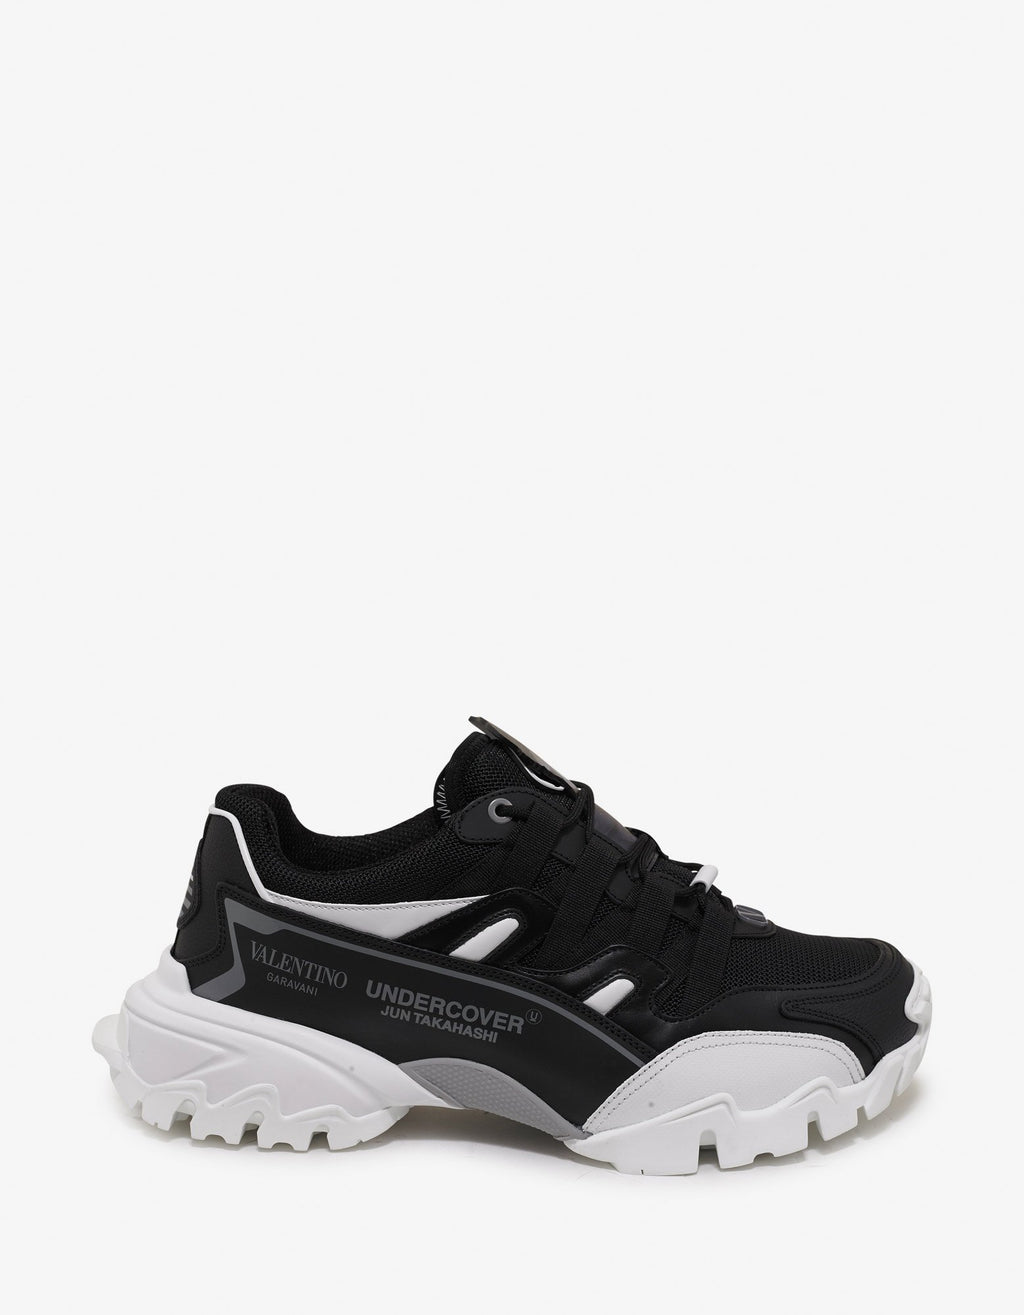 Undercover Black & White Climbers Trainers -